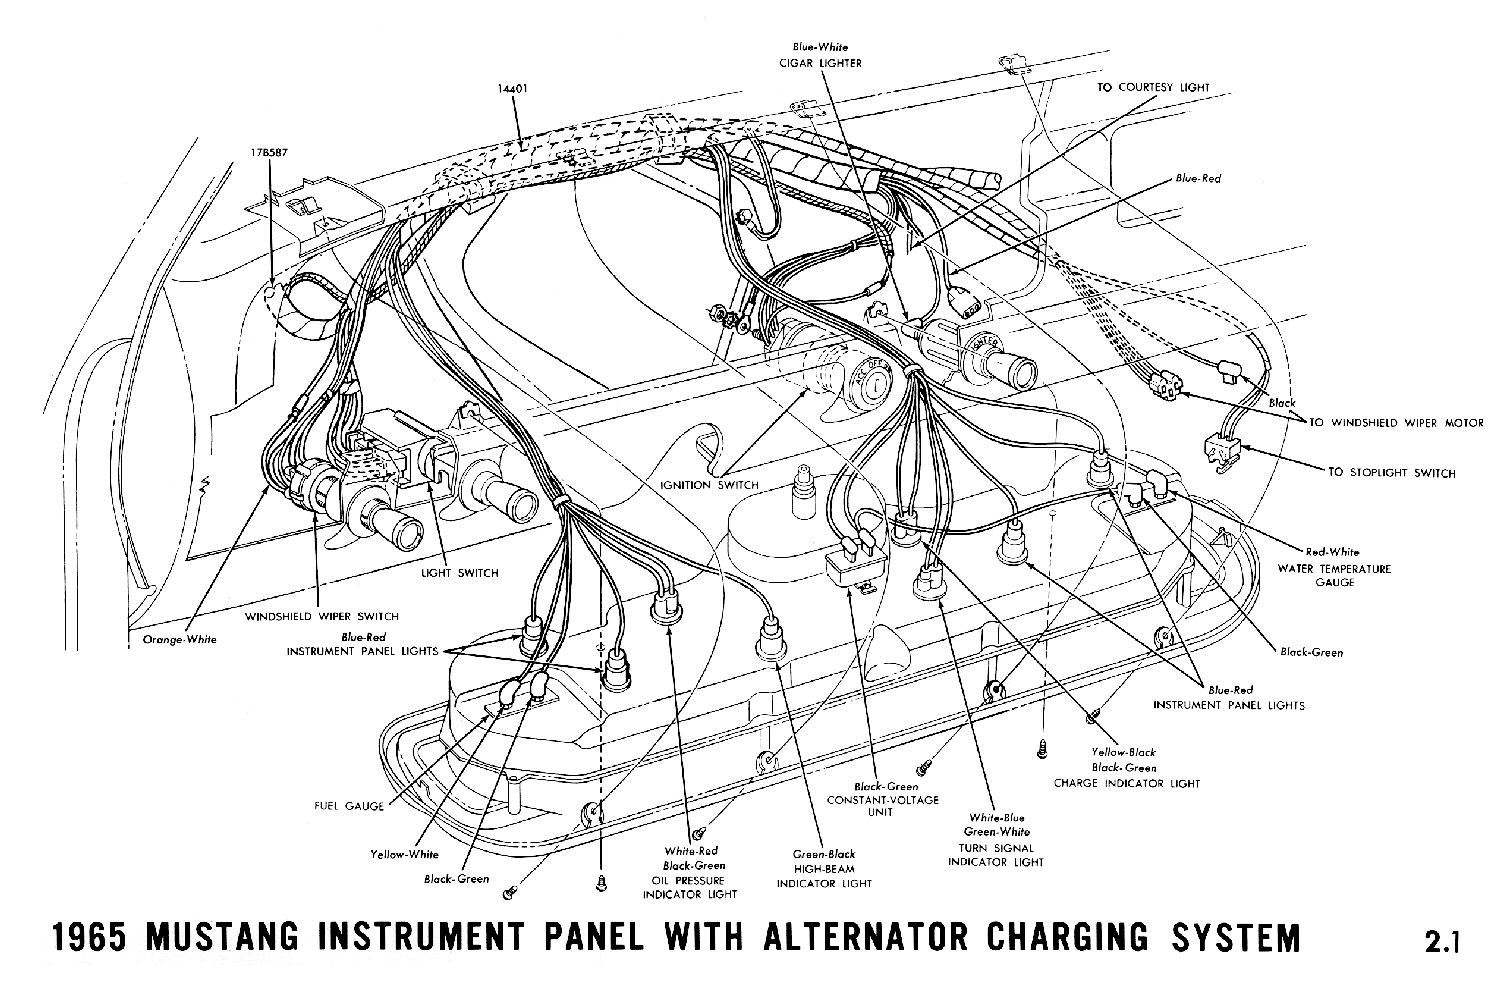 65 Mustang Heater Wiring Diagram Data 1967 Mercury Cougar Ignition 1965 Diagrams Average Joe Restoration Fuse Box